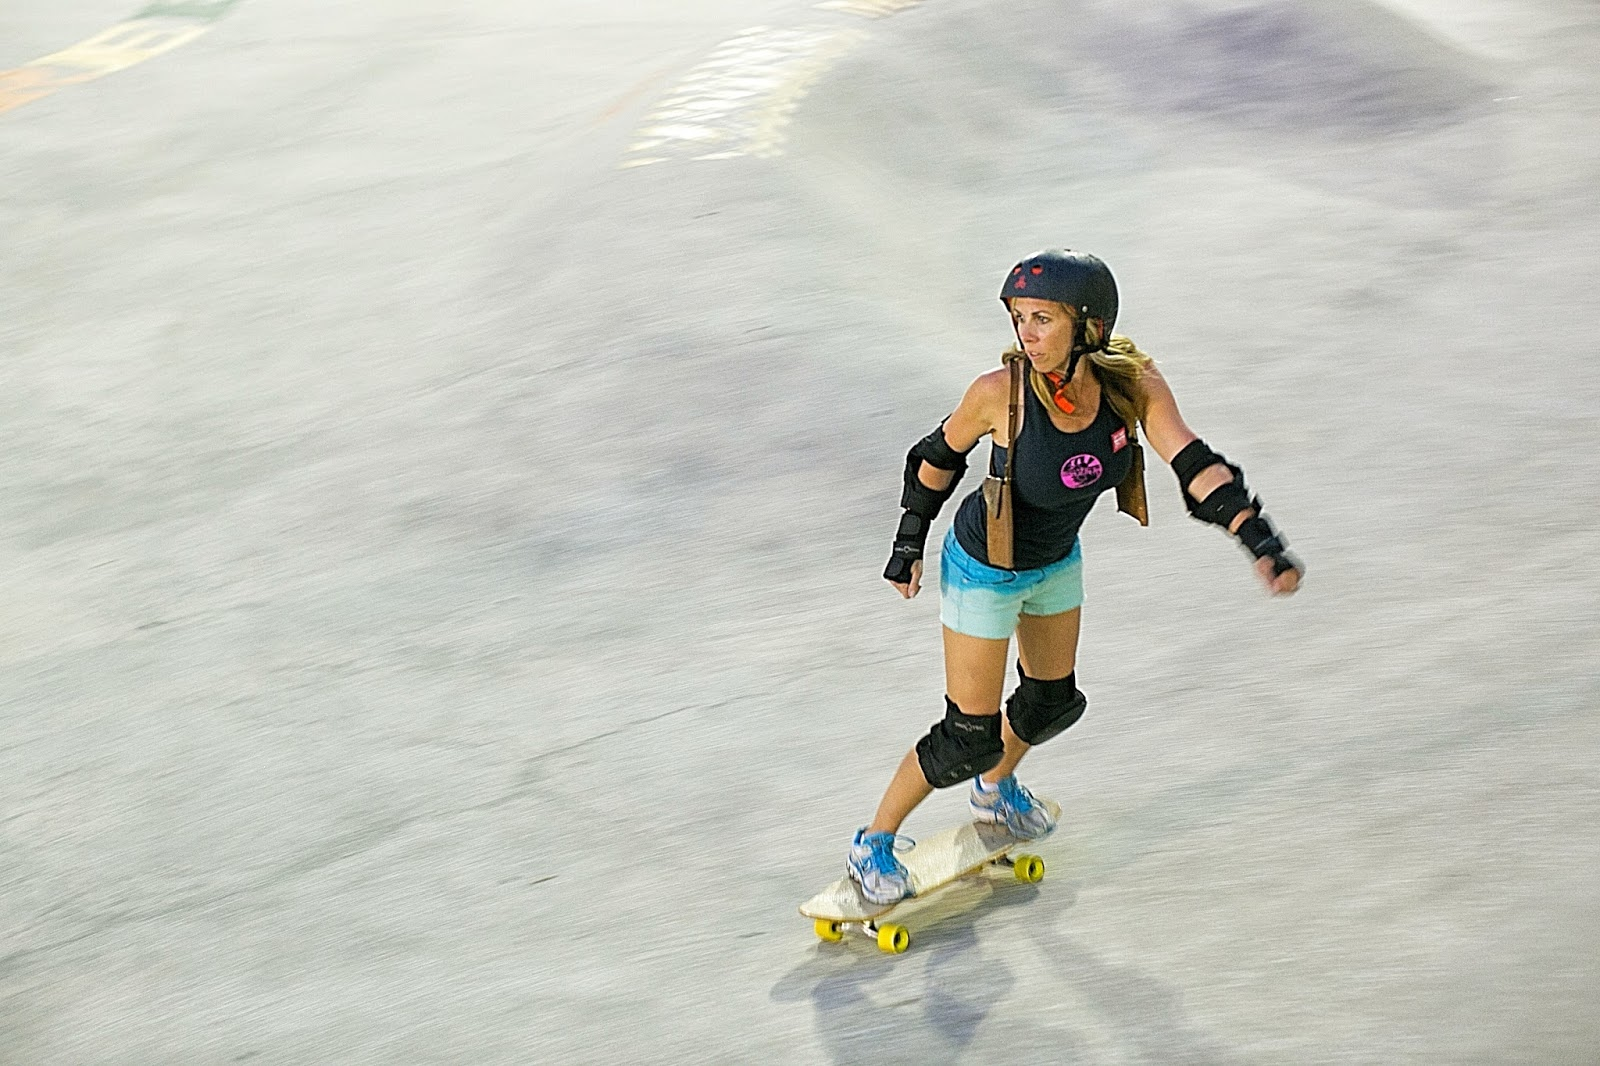 Zumiez roller skates - Our Own Little Shredder Team Rider Zoe Benedetto On A Beautiful Mural